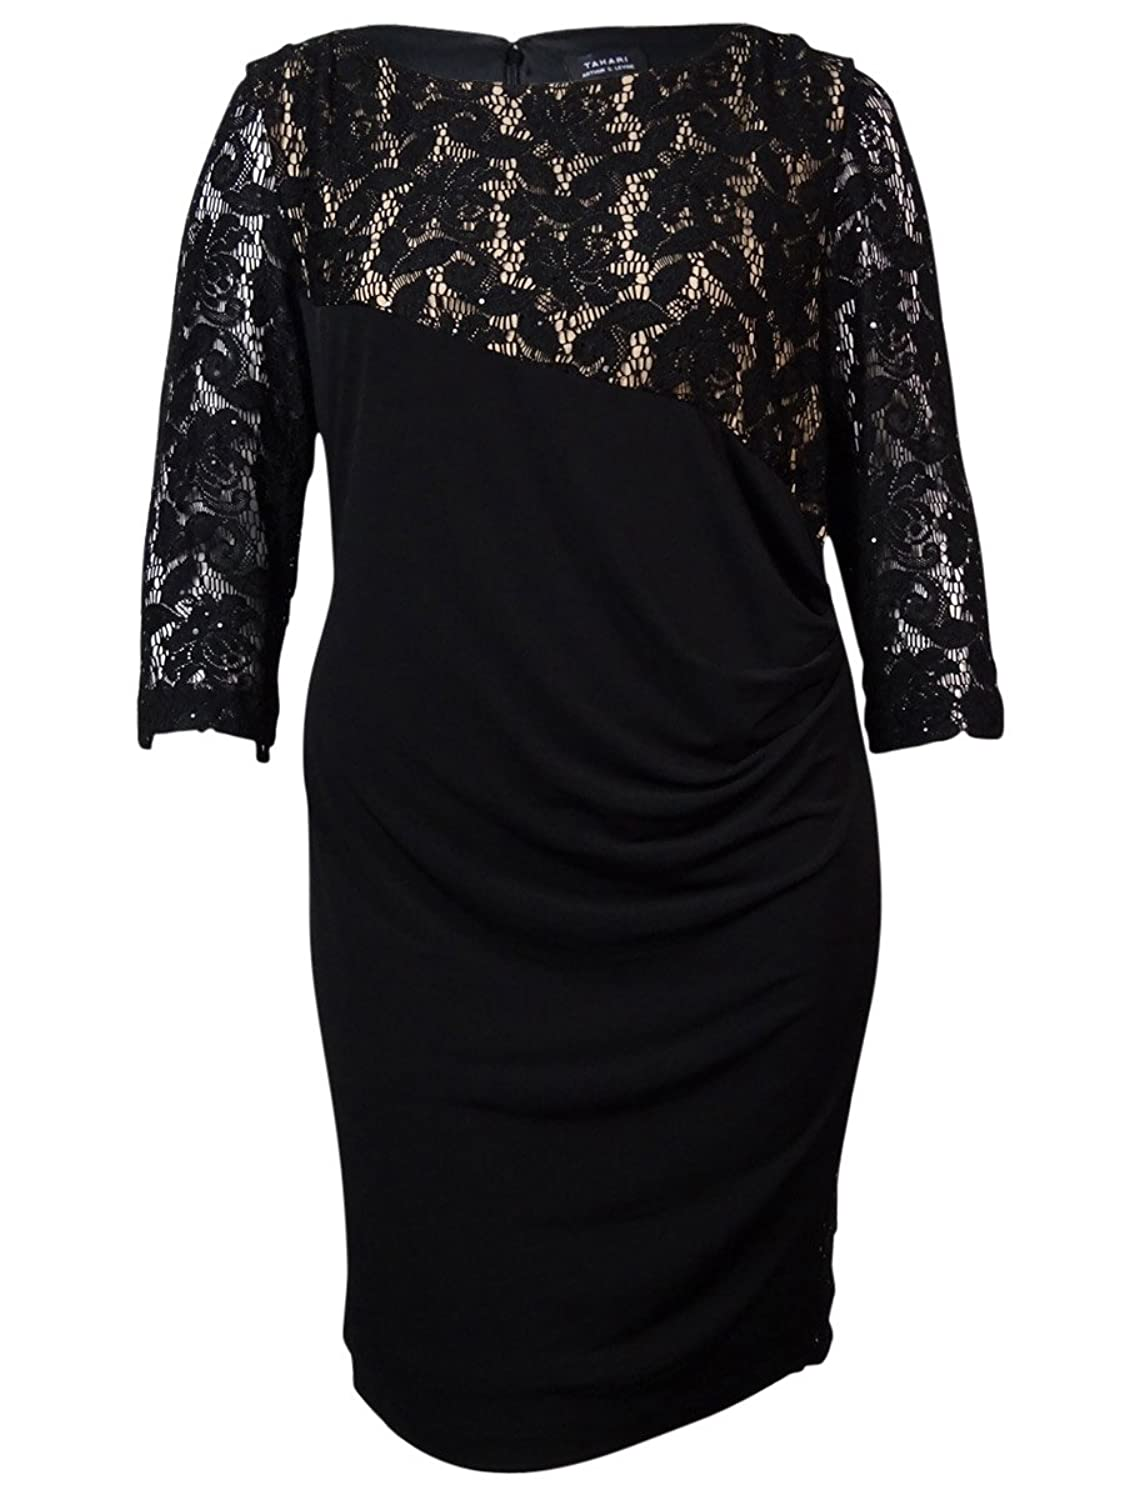 Tahari Women's Faux Wrap Sequin Lace Overlay Jersey Dress